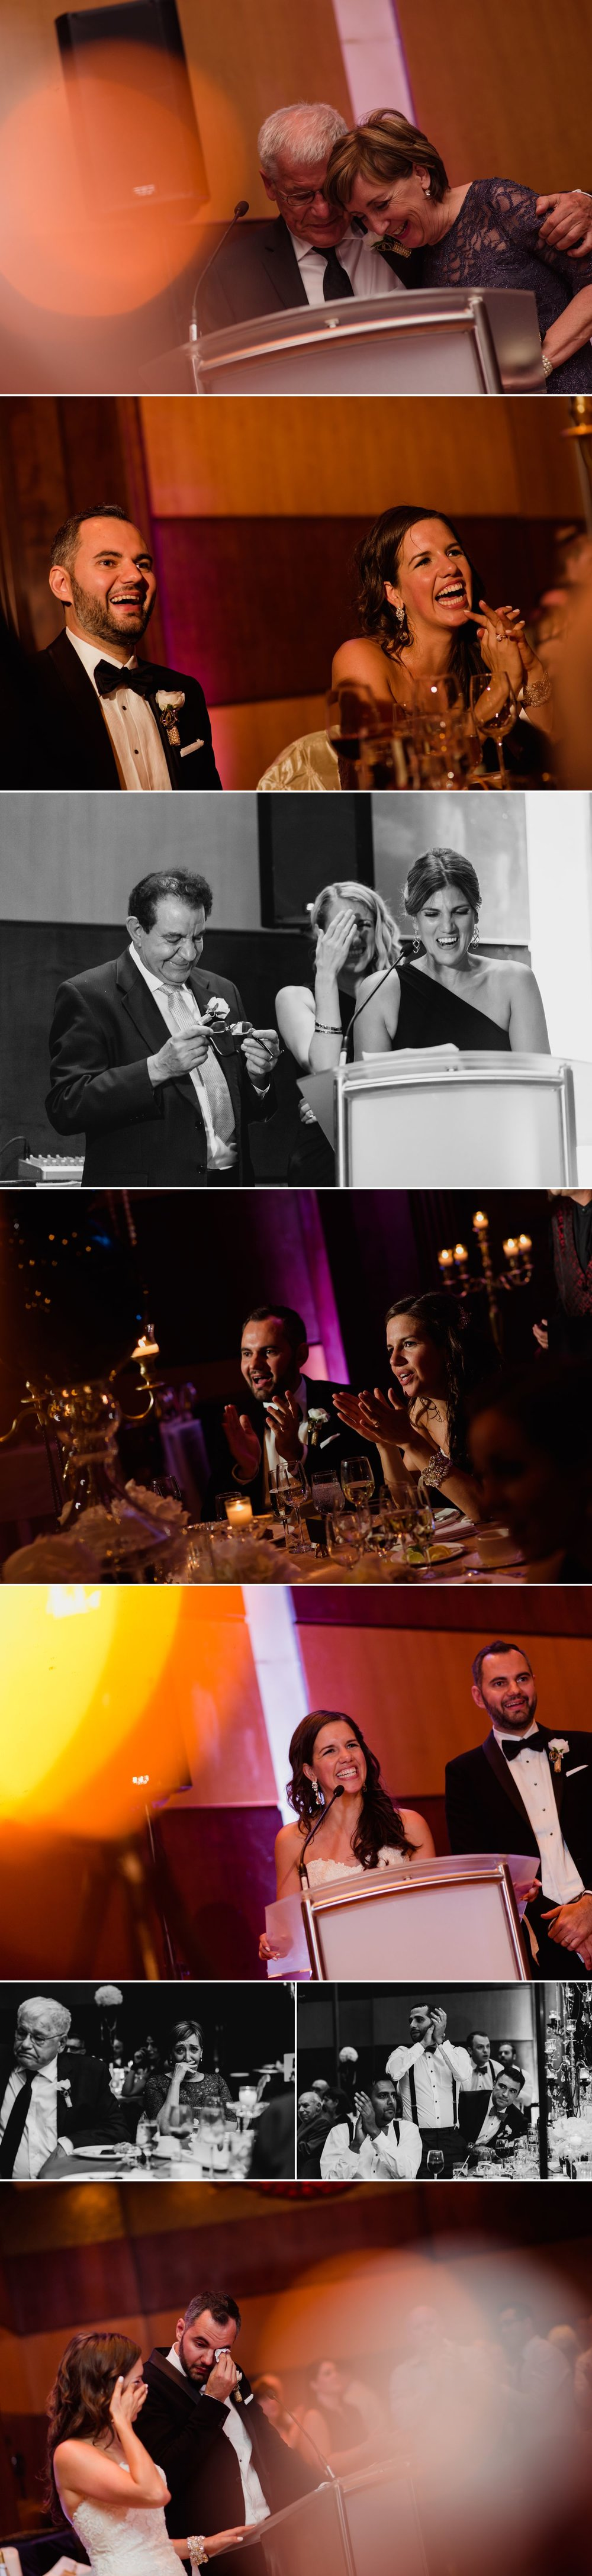 Wedding speeches by the couple and their family at their Hilton wedding reception